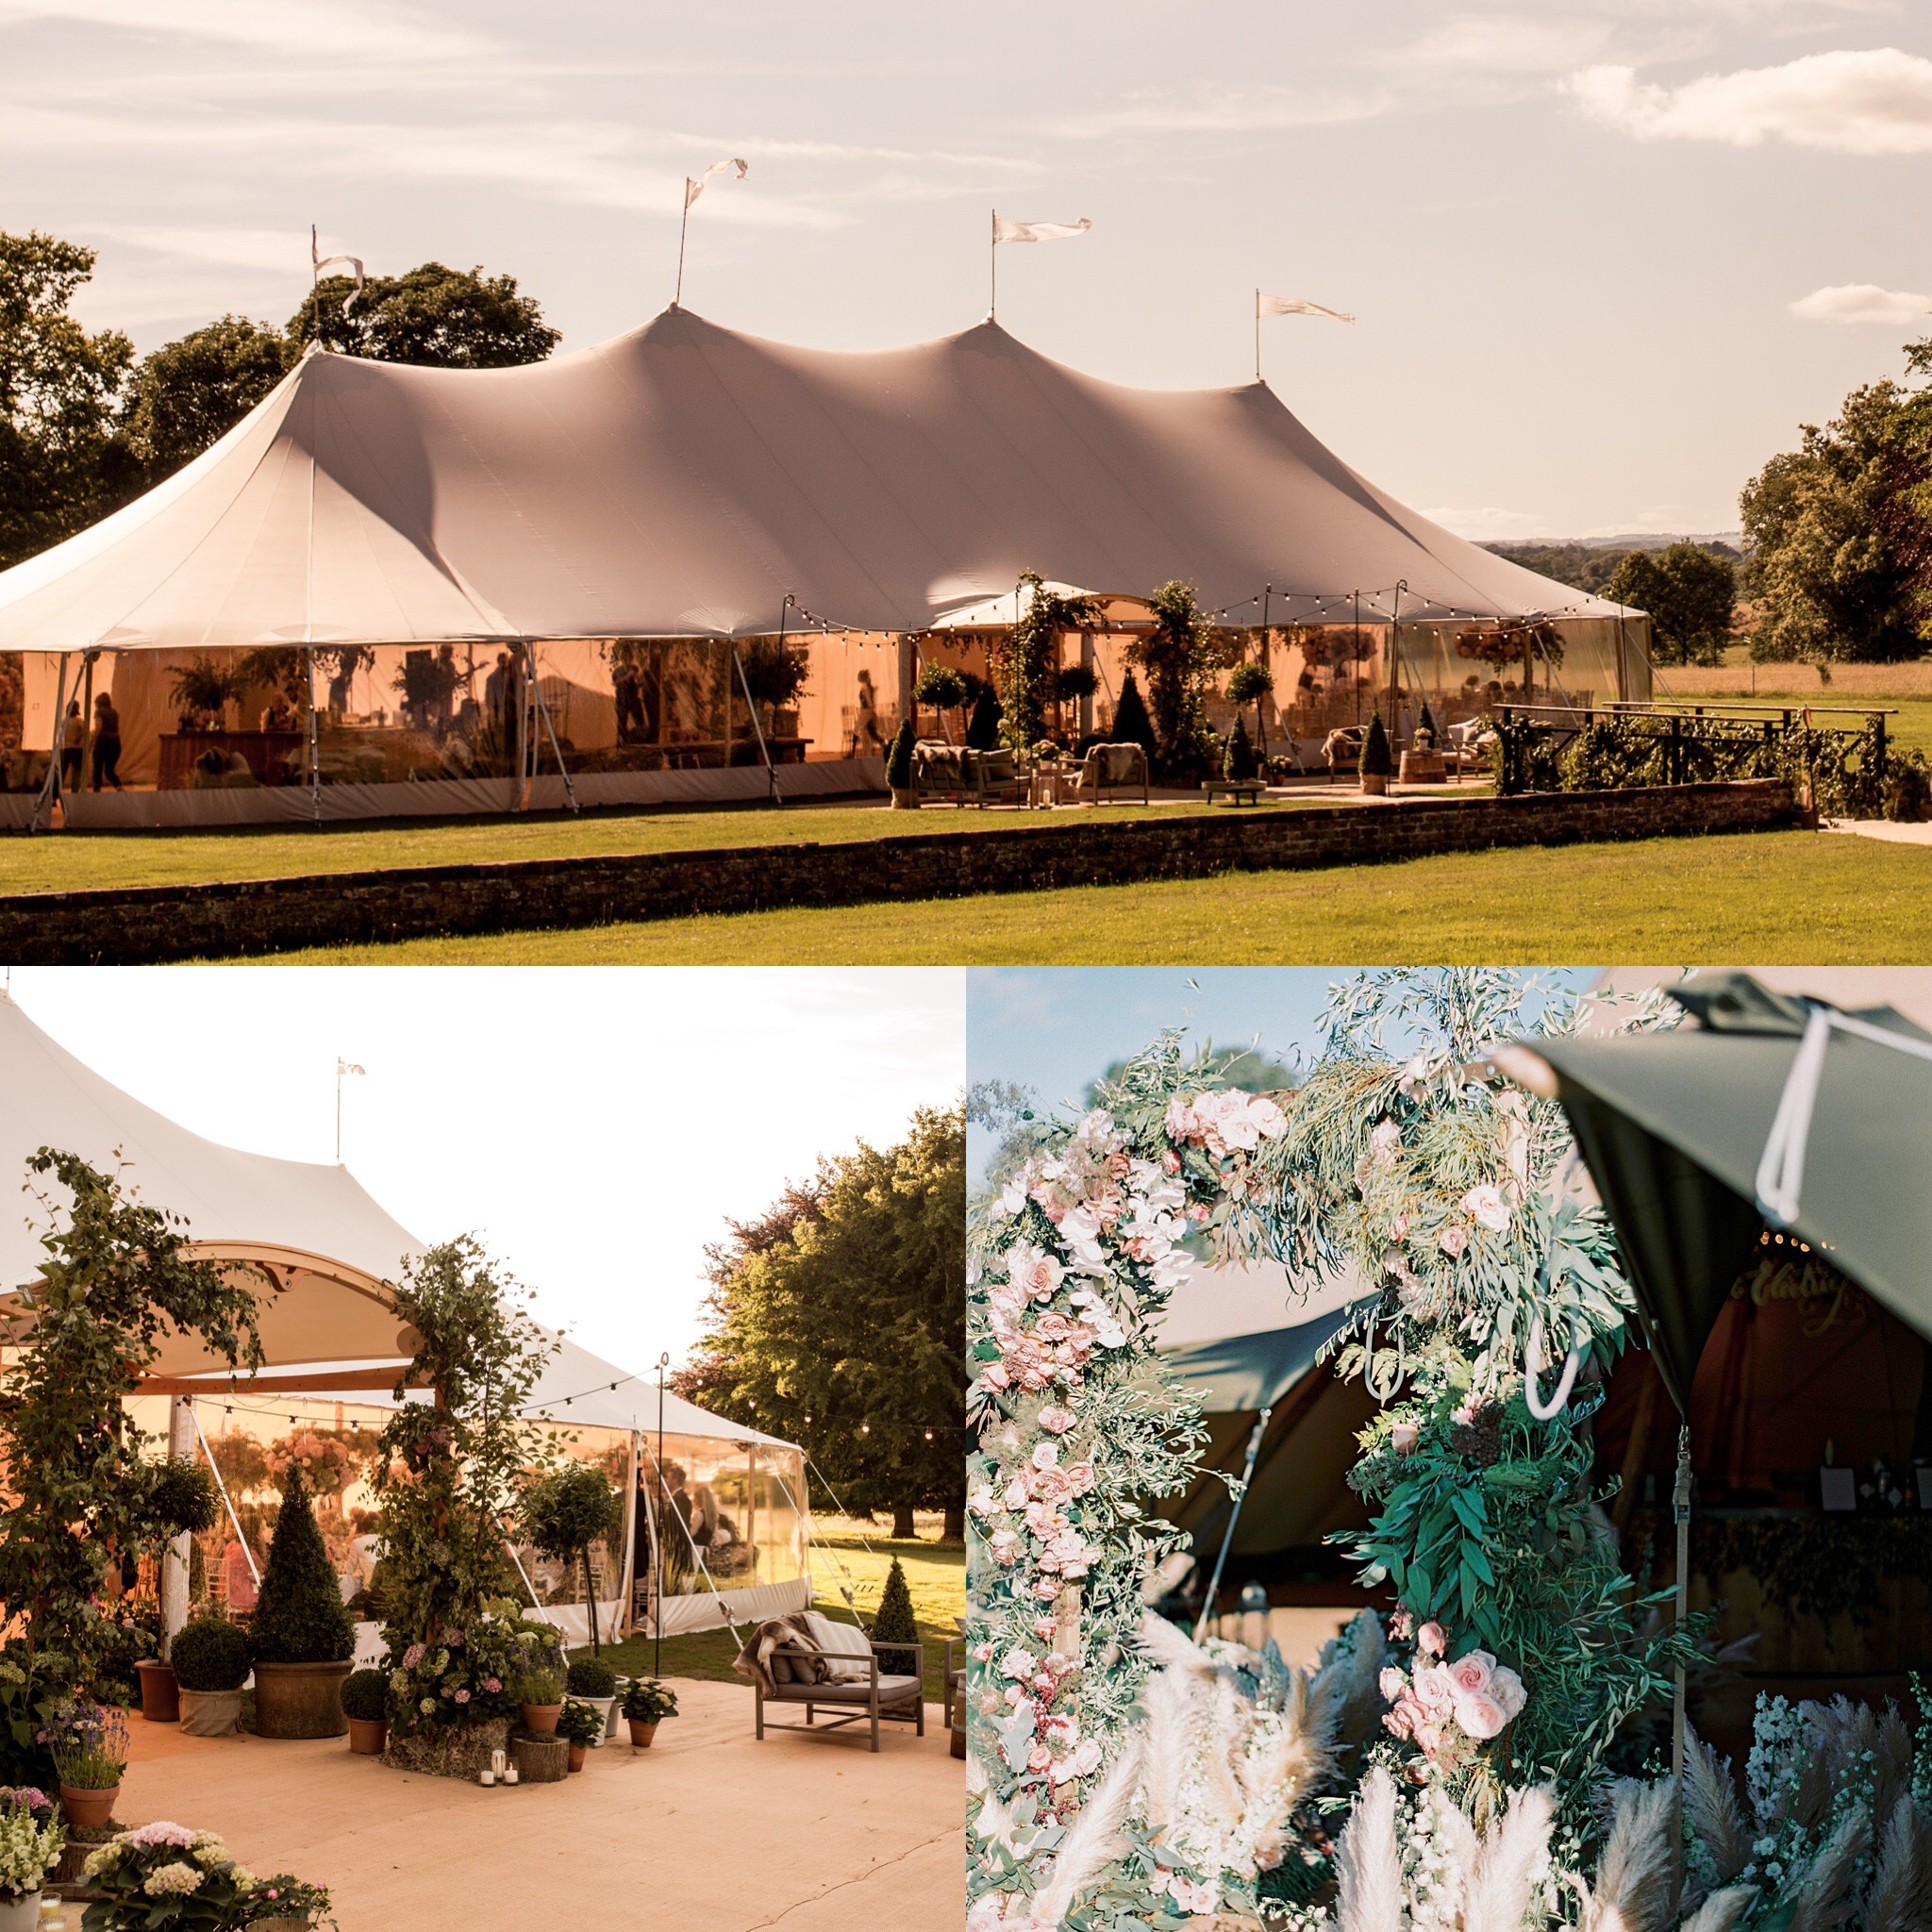 Make an Entrance PapaKåta Teepees and Sperry Tents style Images by Allister Freeman | Katie Julia